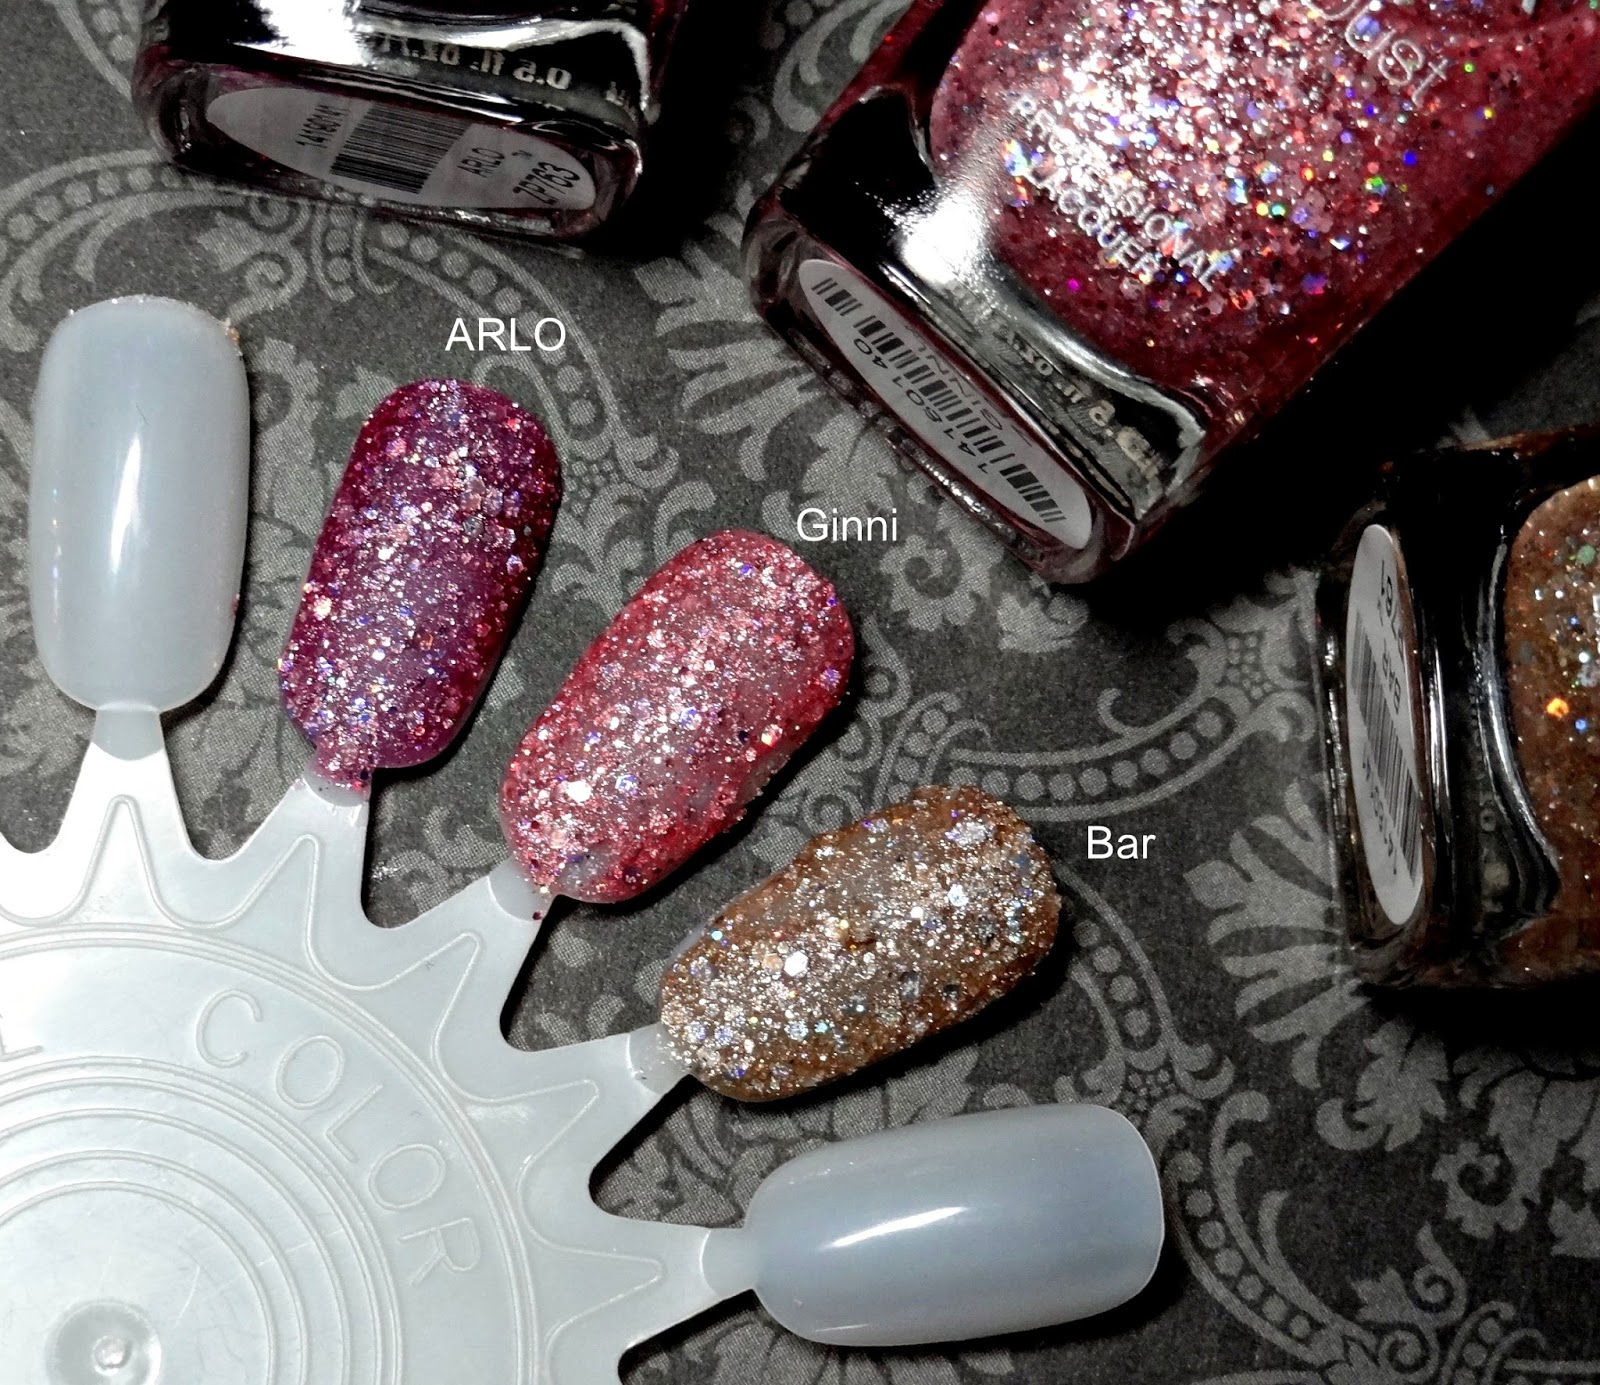 ZOYA Magical Pixie Summer 2014 Collection Review, Photos & Swatches Arlo Ginni Bar